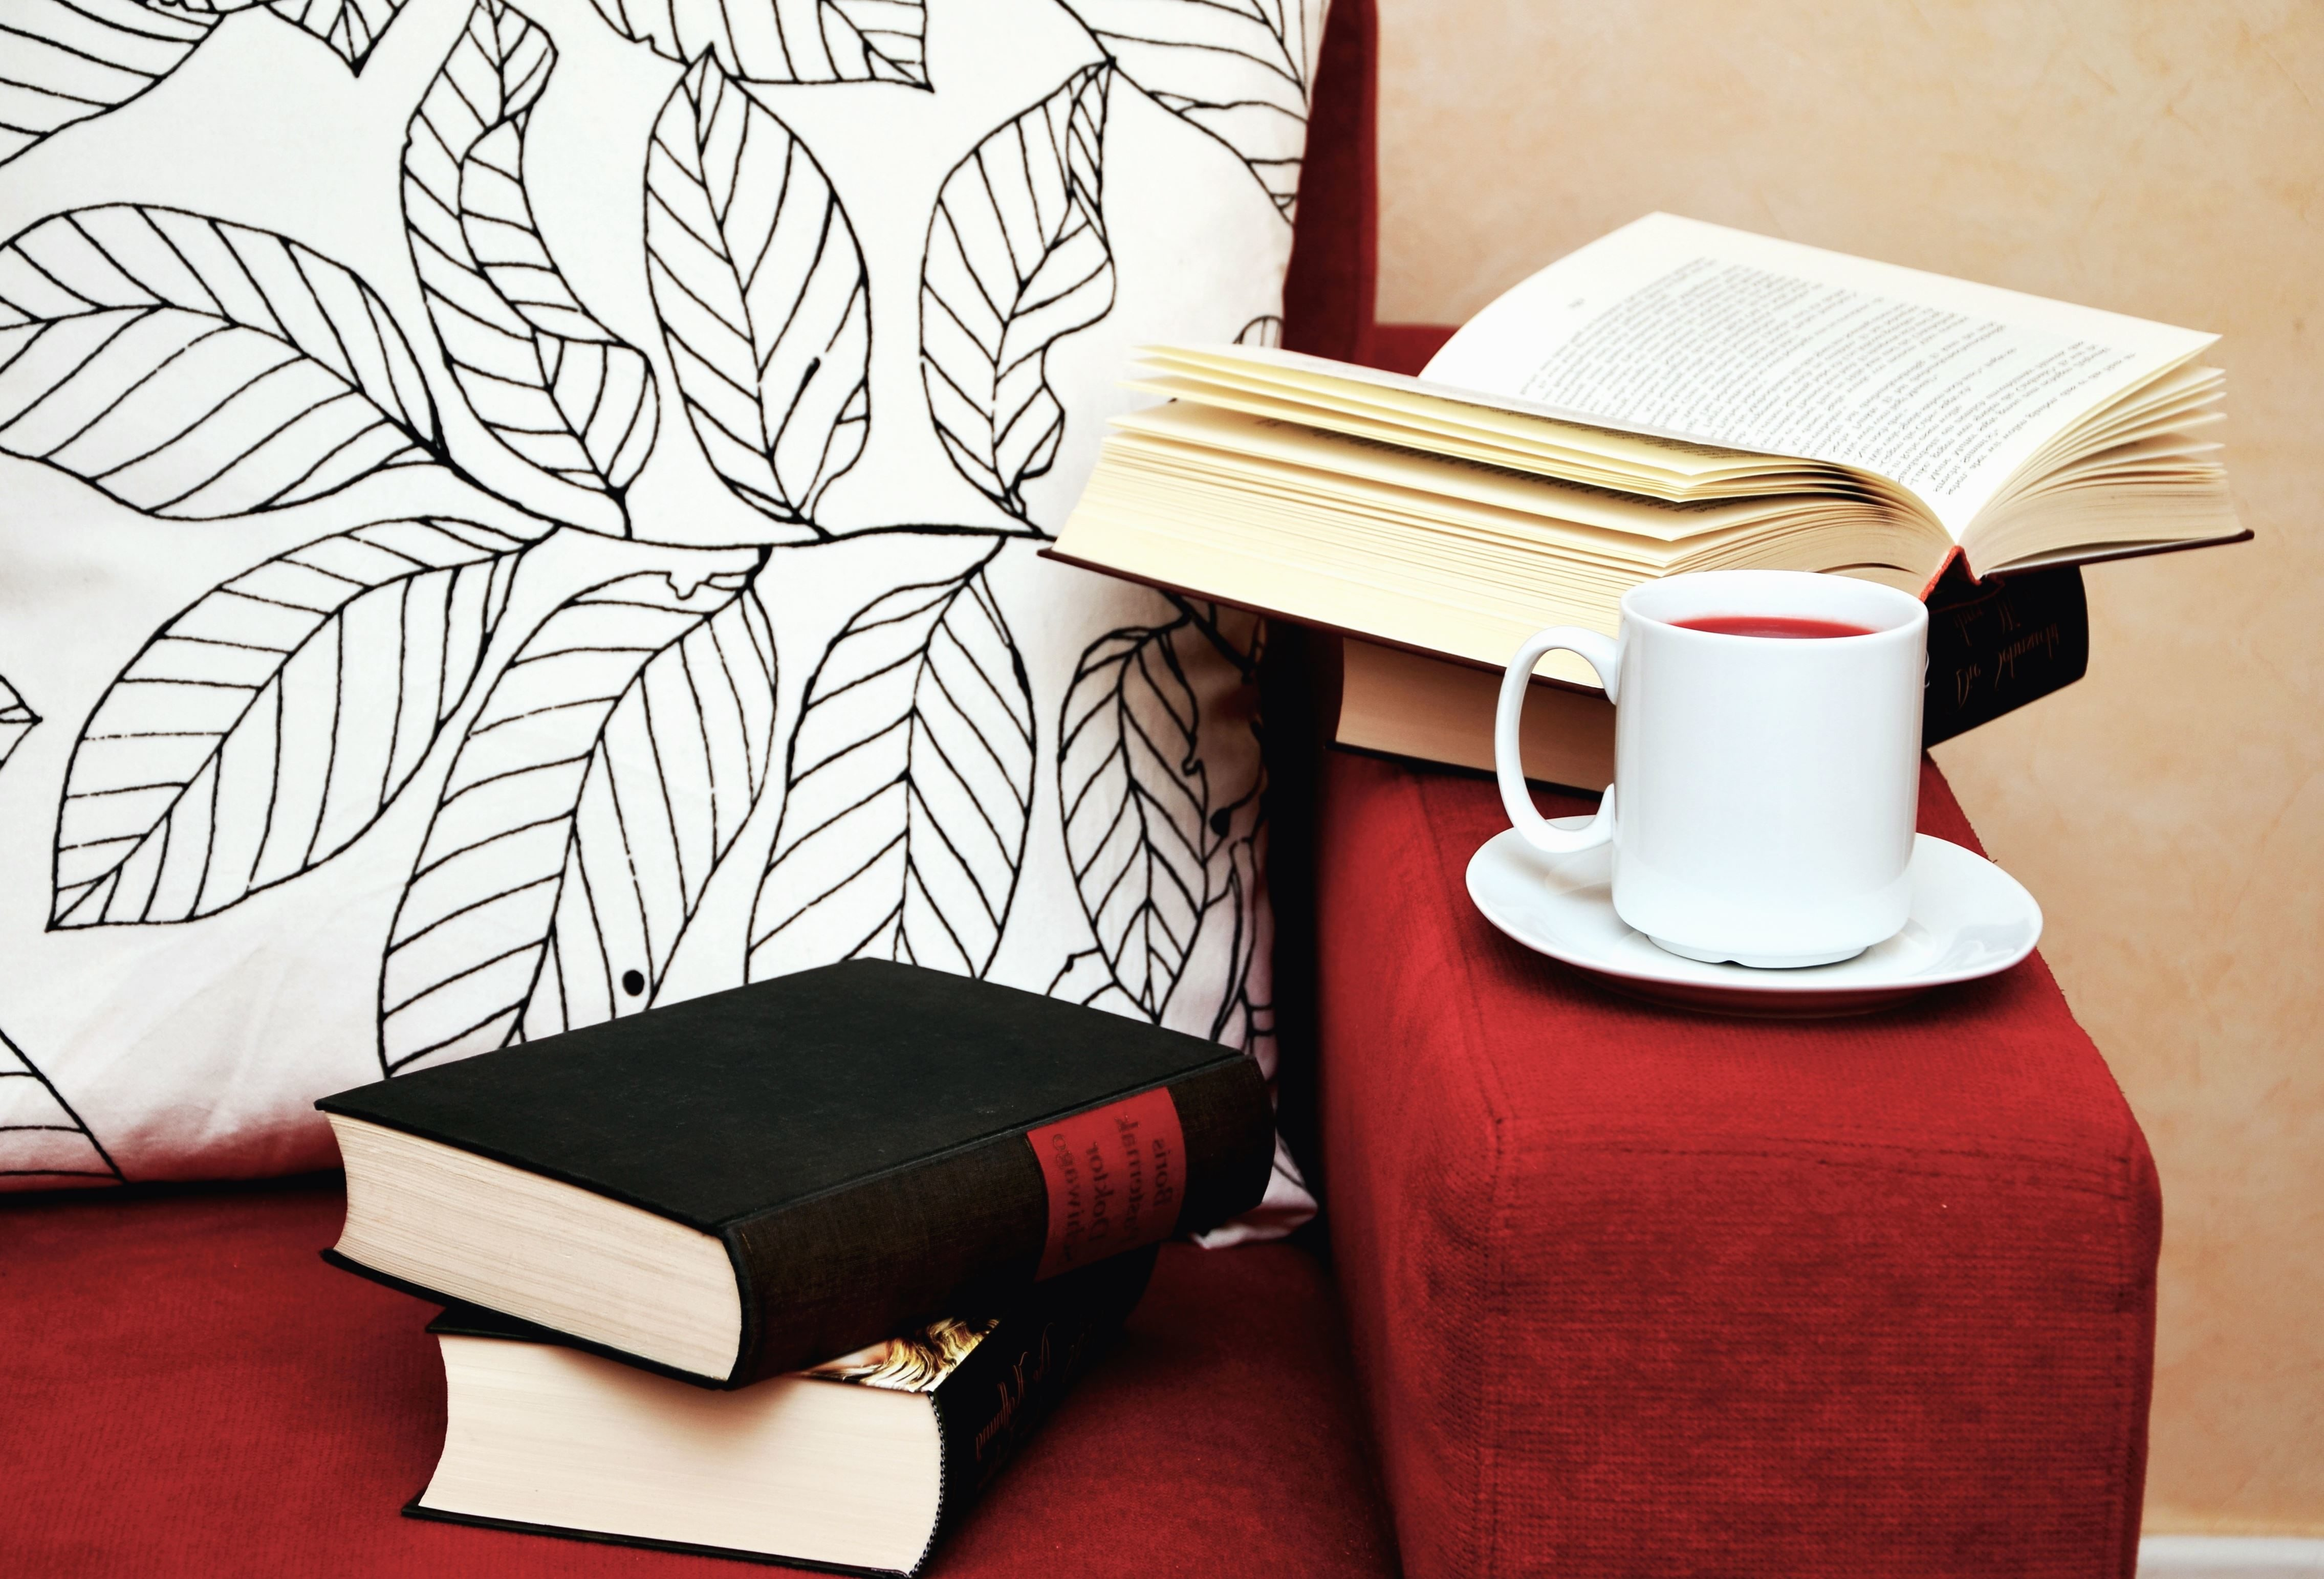 Cup Tea Book Chair Learning Study